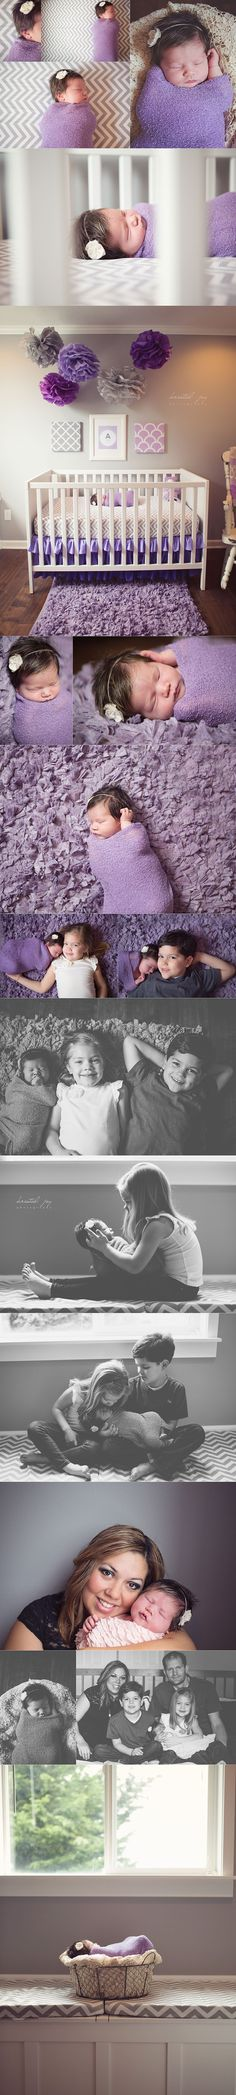 I LOVE PURPLE AND GREY! First I noticed the adorable baby in the dreamiest purple and grey nursery ever. Then I thought OMG!! these are some of the cutest new born pics!!  {I love the one of the baby and big sissy holding her}